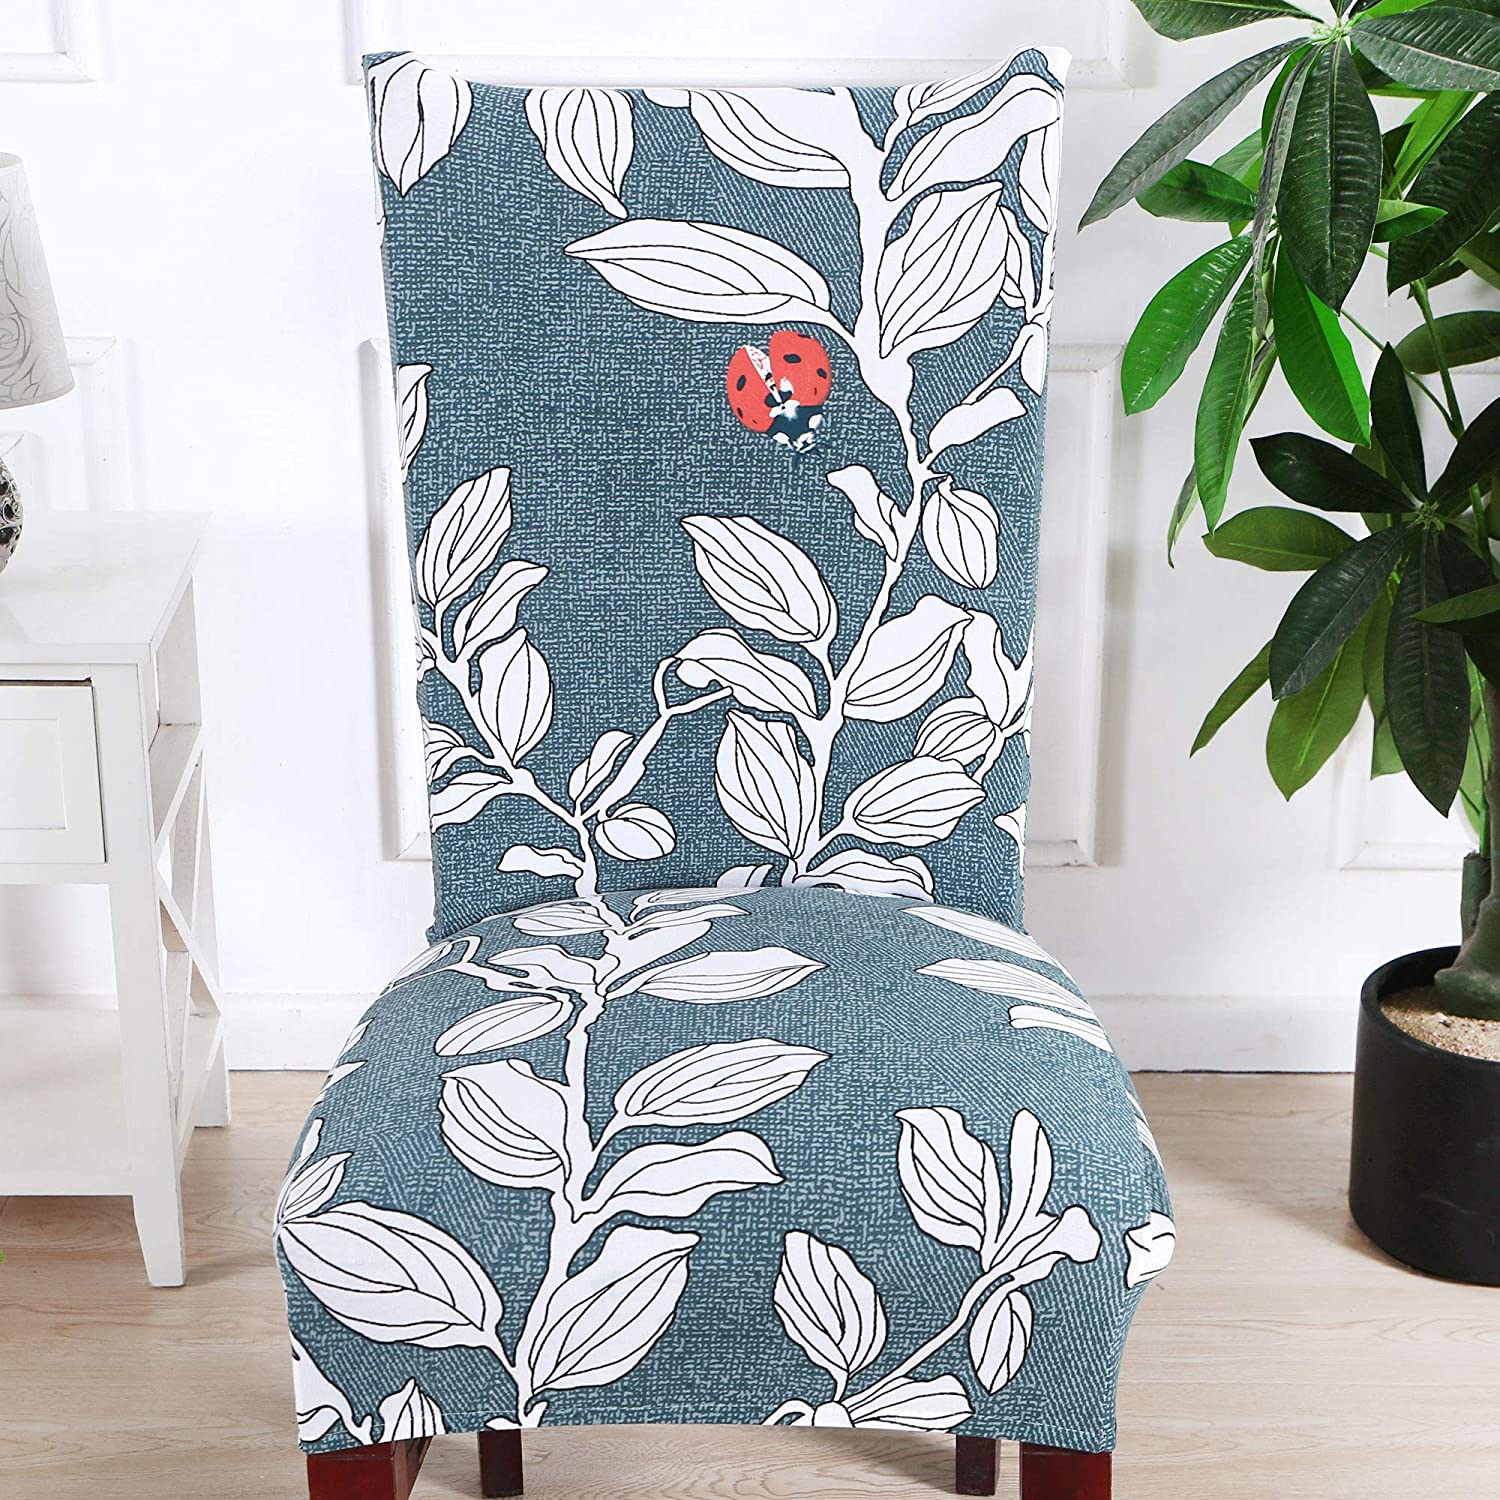 SoulFeel 6 x Soft Spandex Fit Stretch Short Dining Room Covers with Printed Pattern Pack of 6 Style 24 B06 Banquet Chair Seat Protector Slipcover for Home Party Hotel Wedding Ceremony